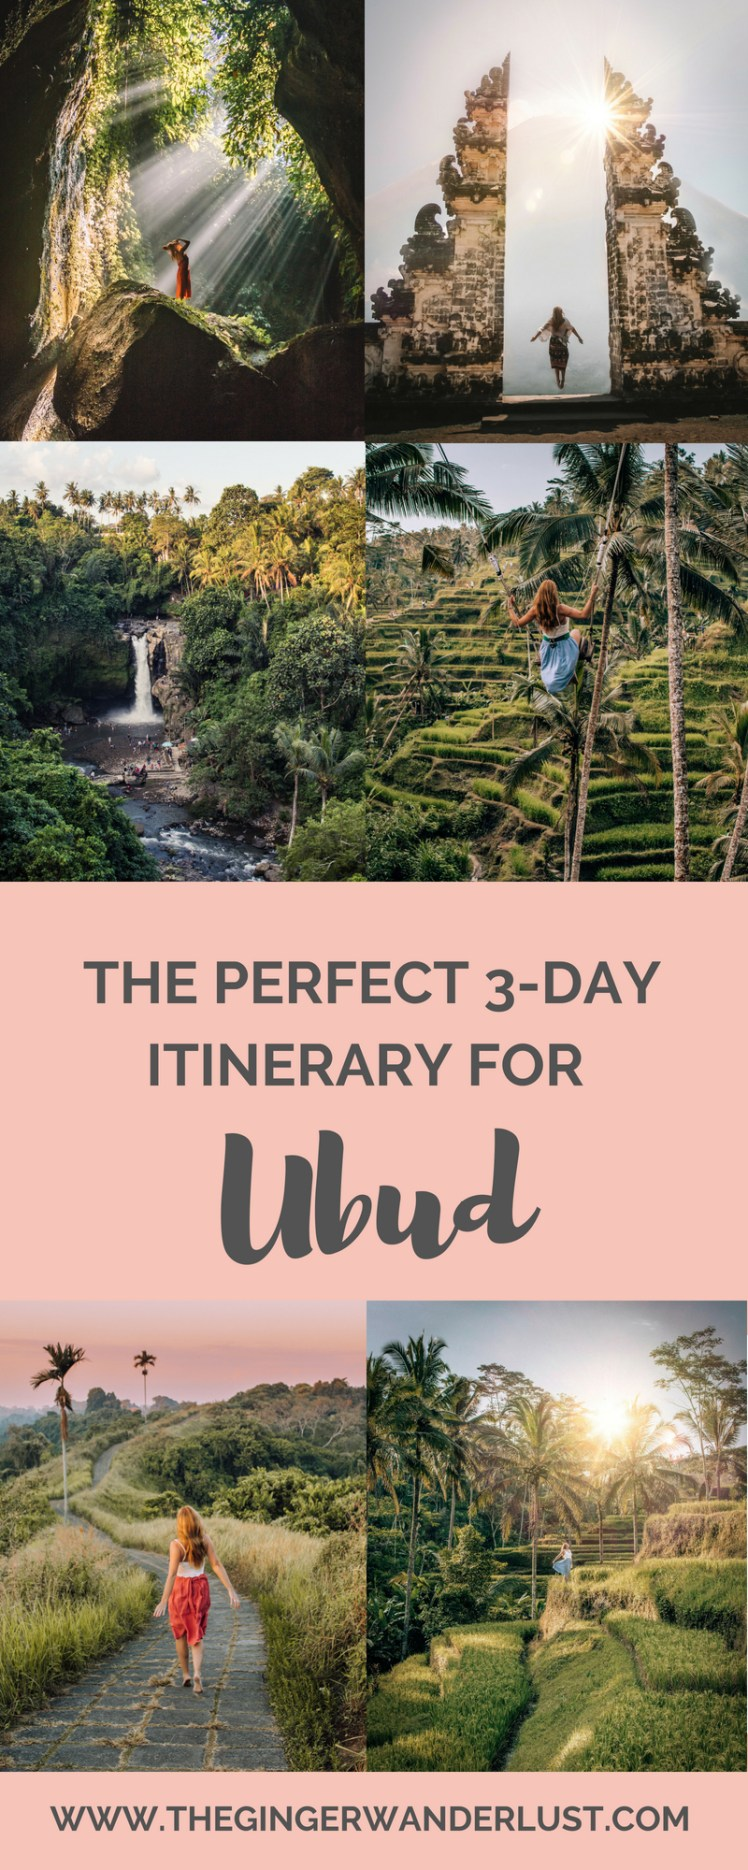 Top Things to do in Ubud, 3 day itinerary with all my top tips. Unmissable locations and instagrammable spots to visit in Ubud, Bali.